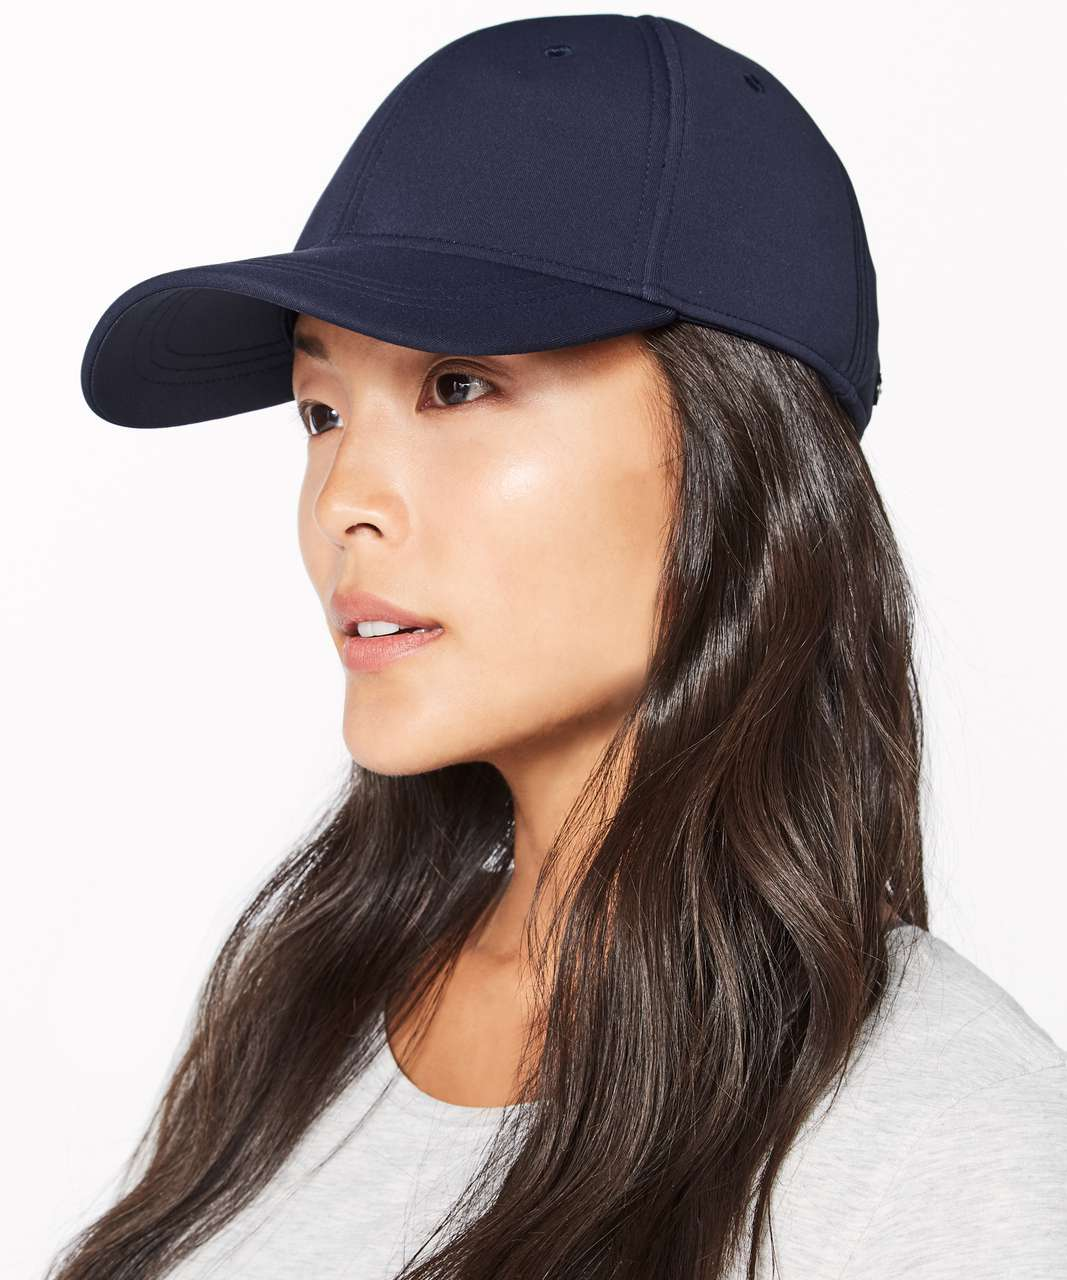 Lululemon Baller Hat - Midnight Navy (First Release)